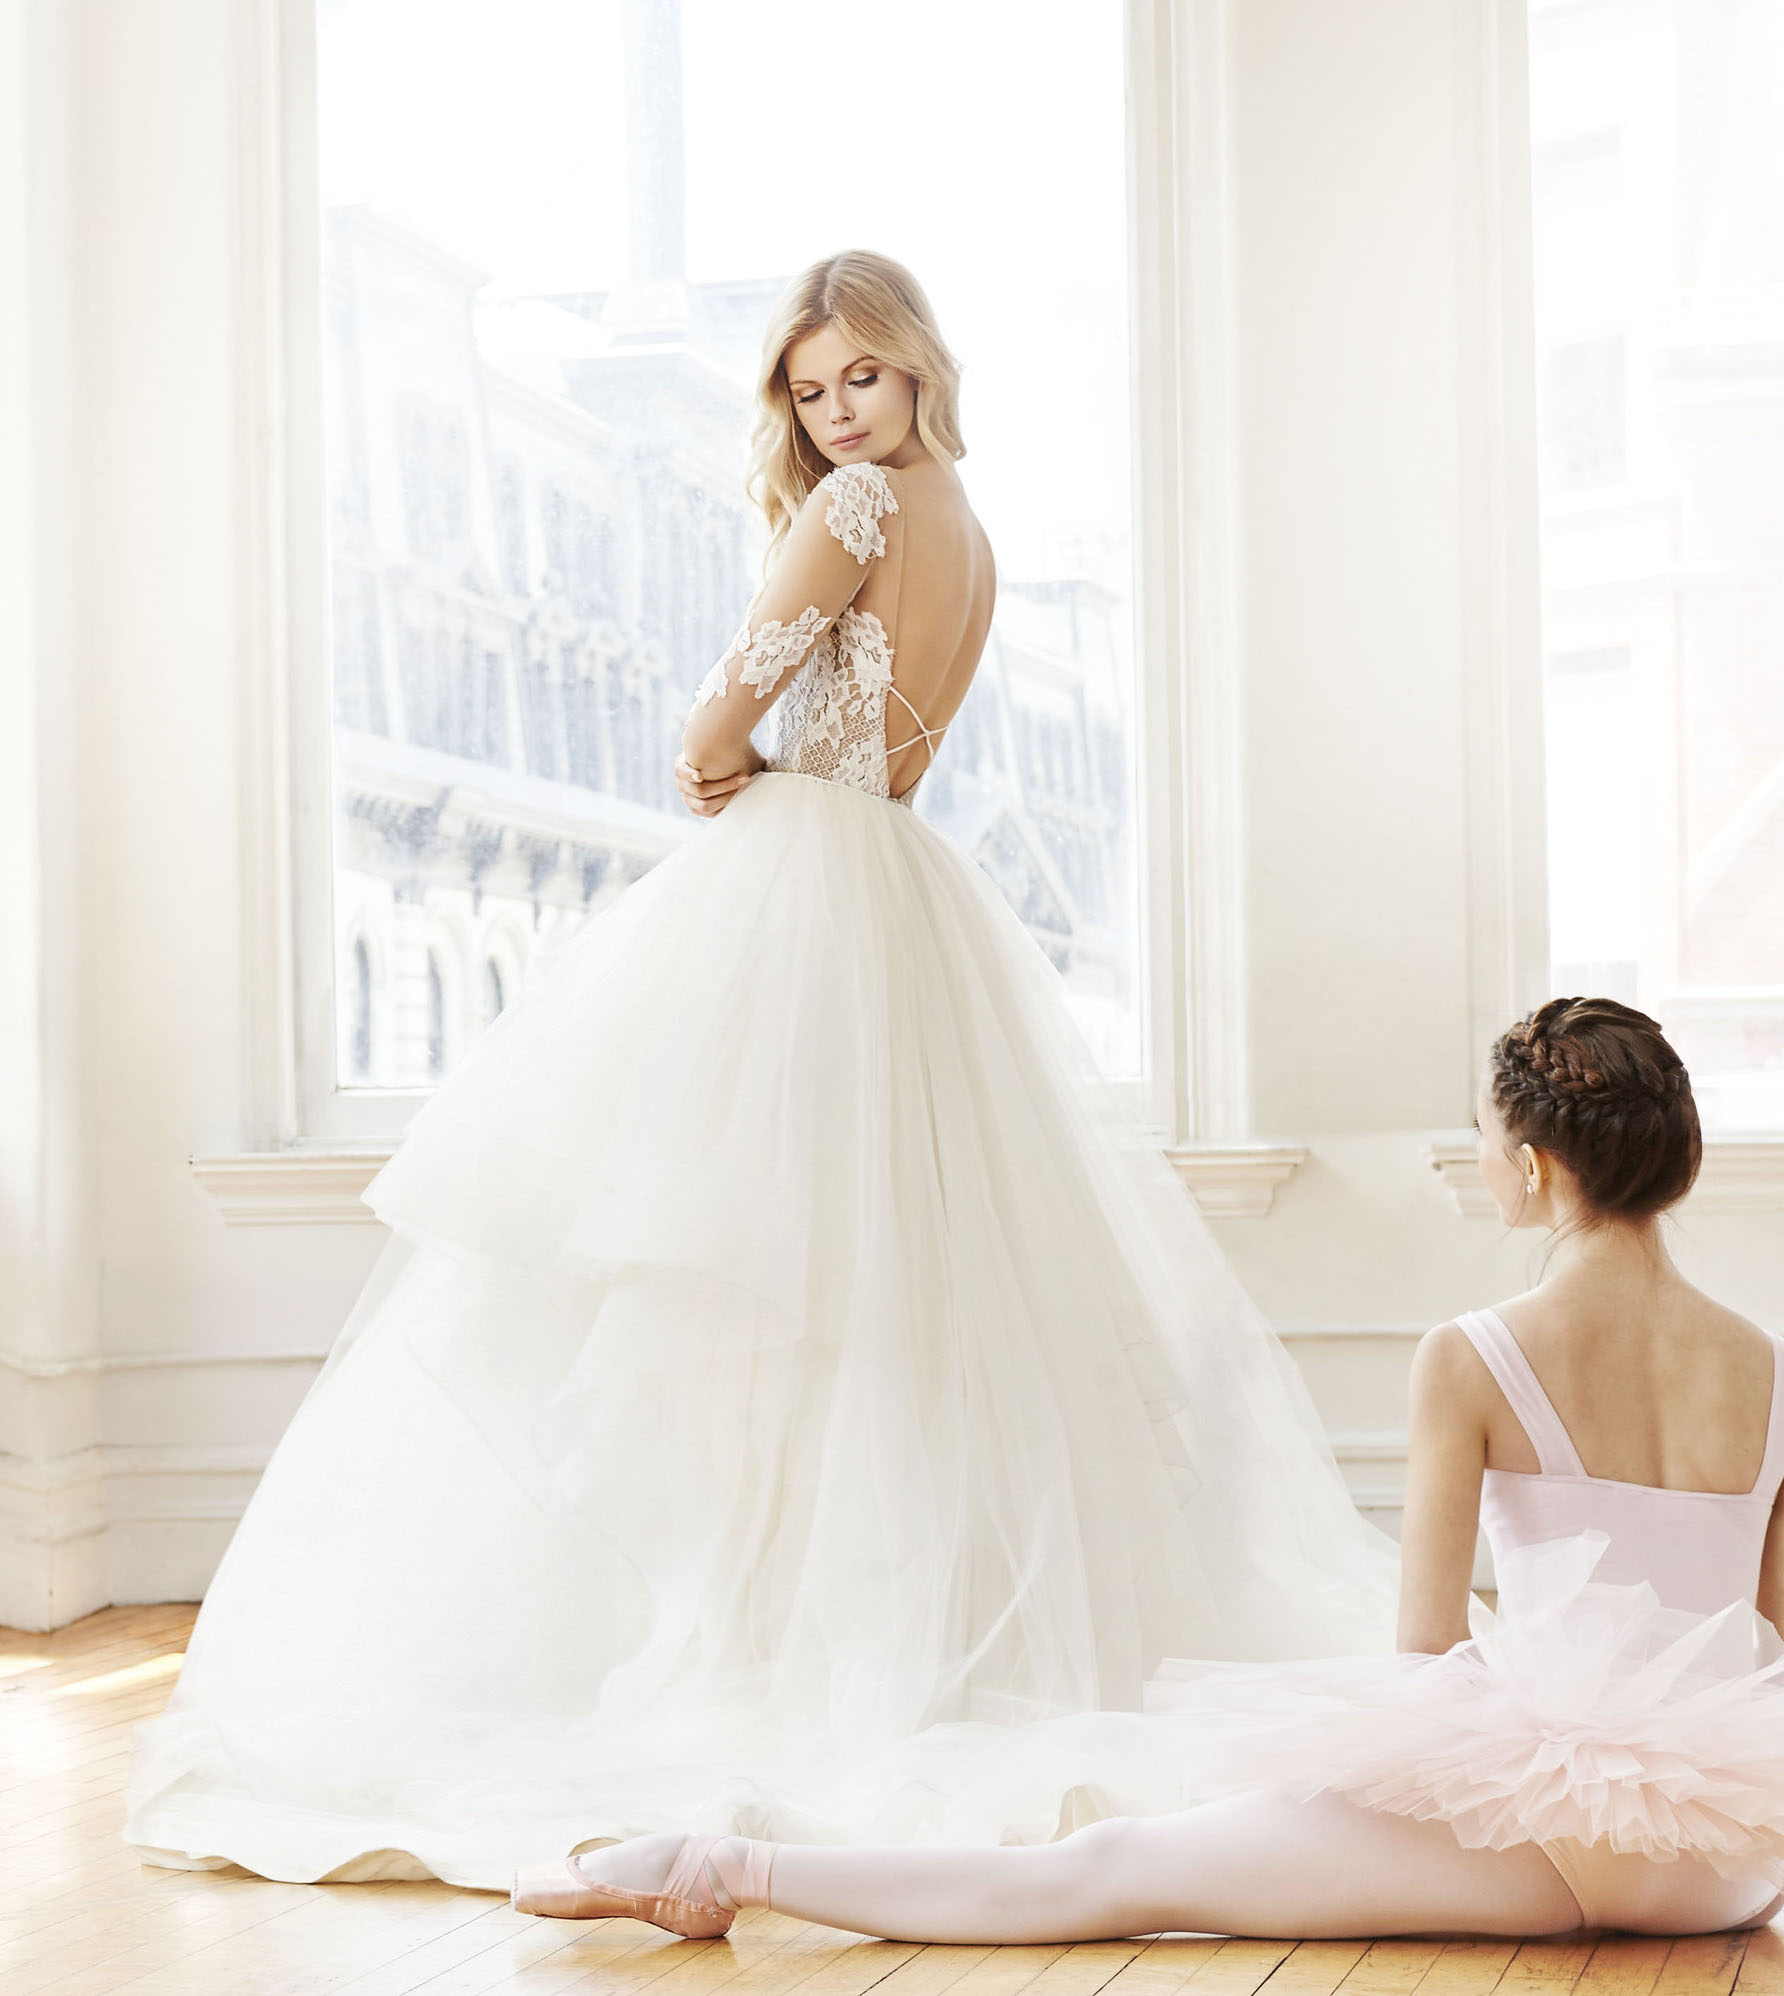 5 Amazing Under The Radar Wedding Dress Designers